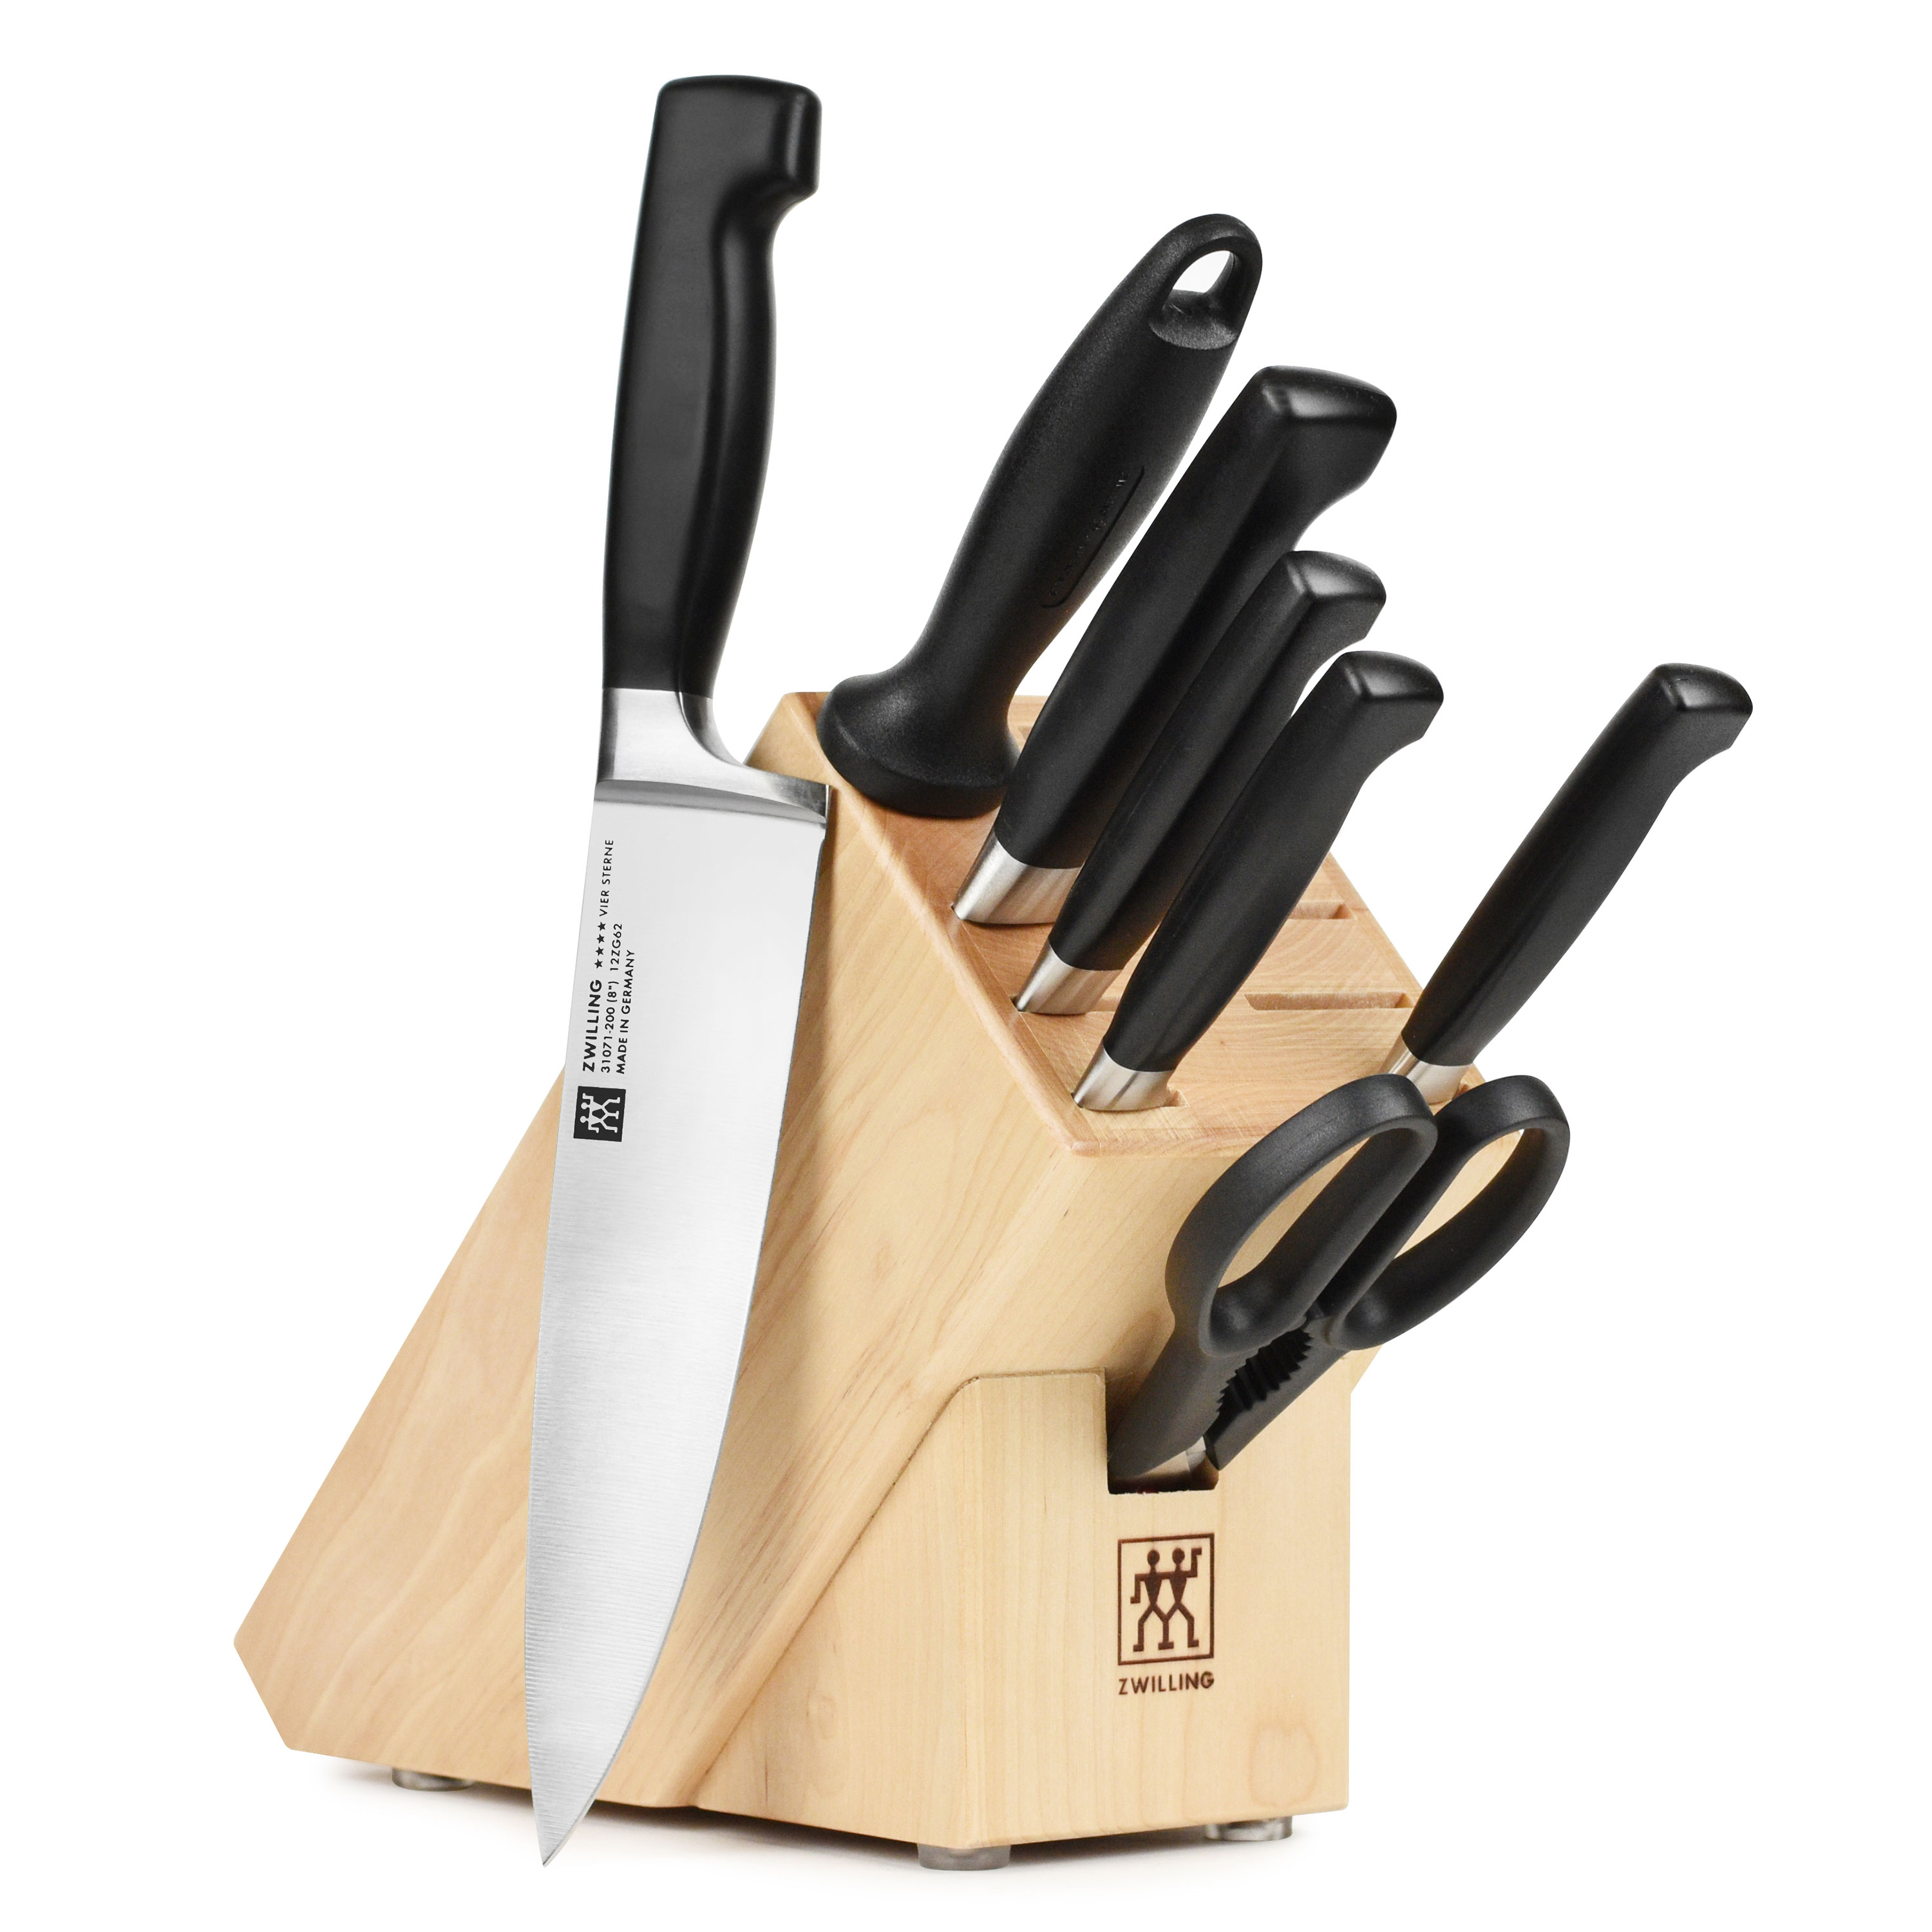 zwilling ja henckels four star knife block set 8piece cutlery and more